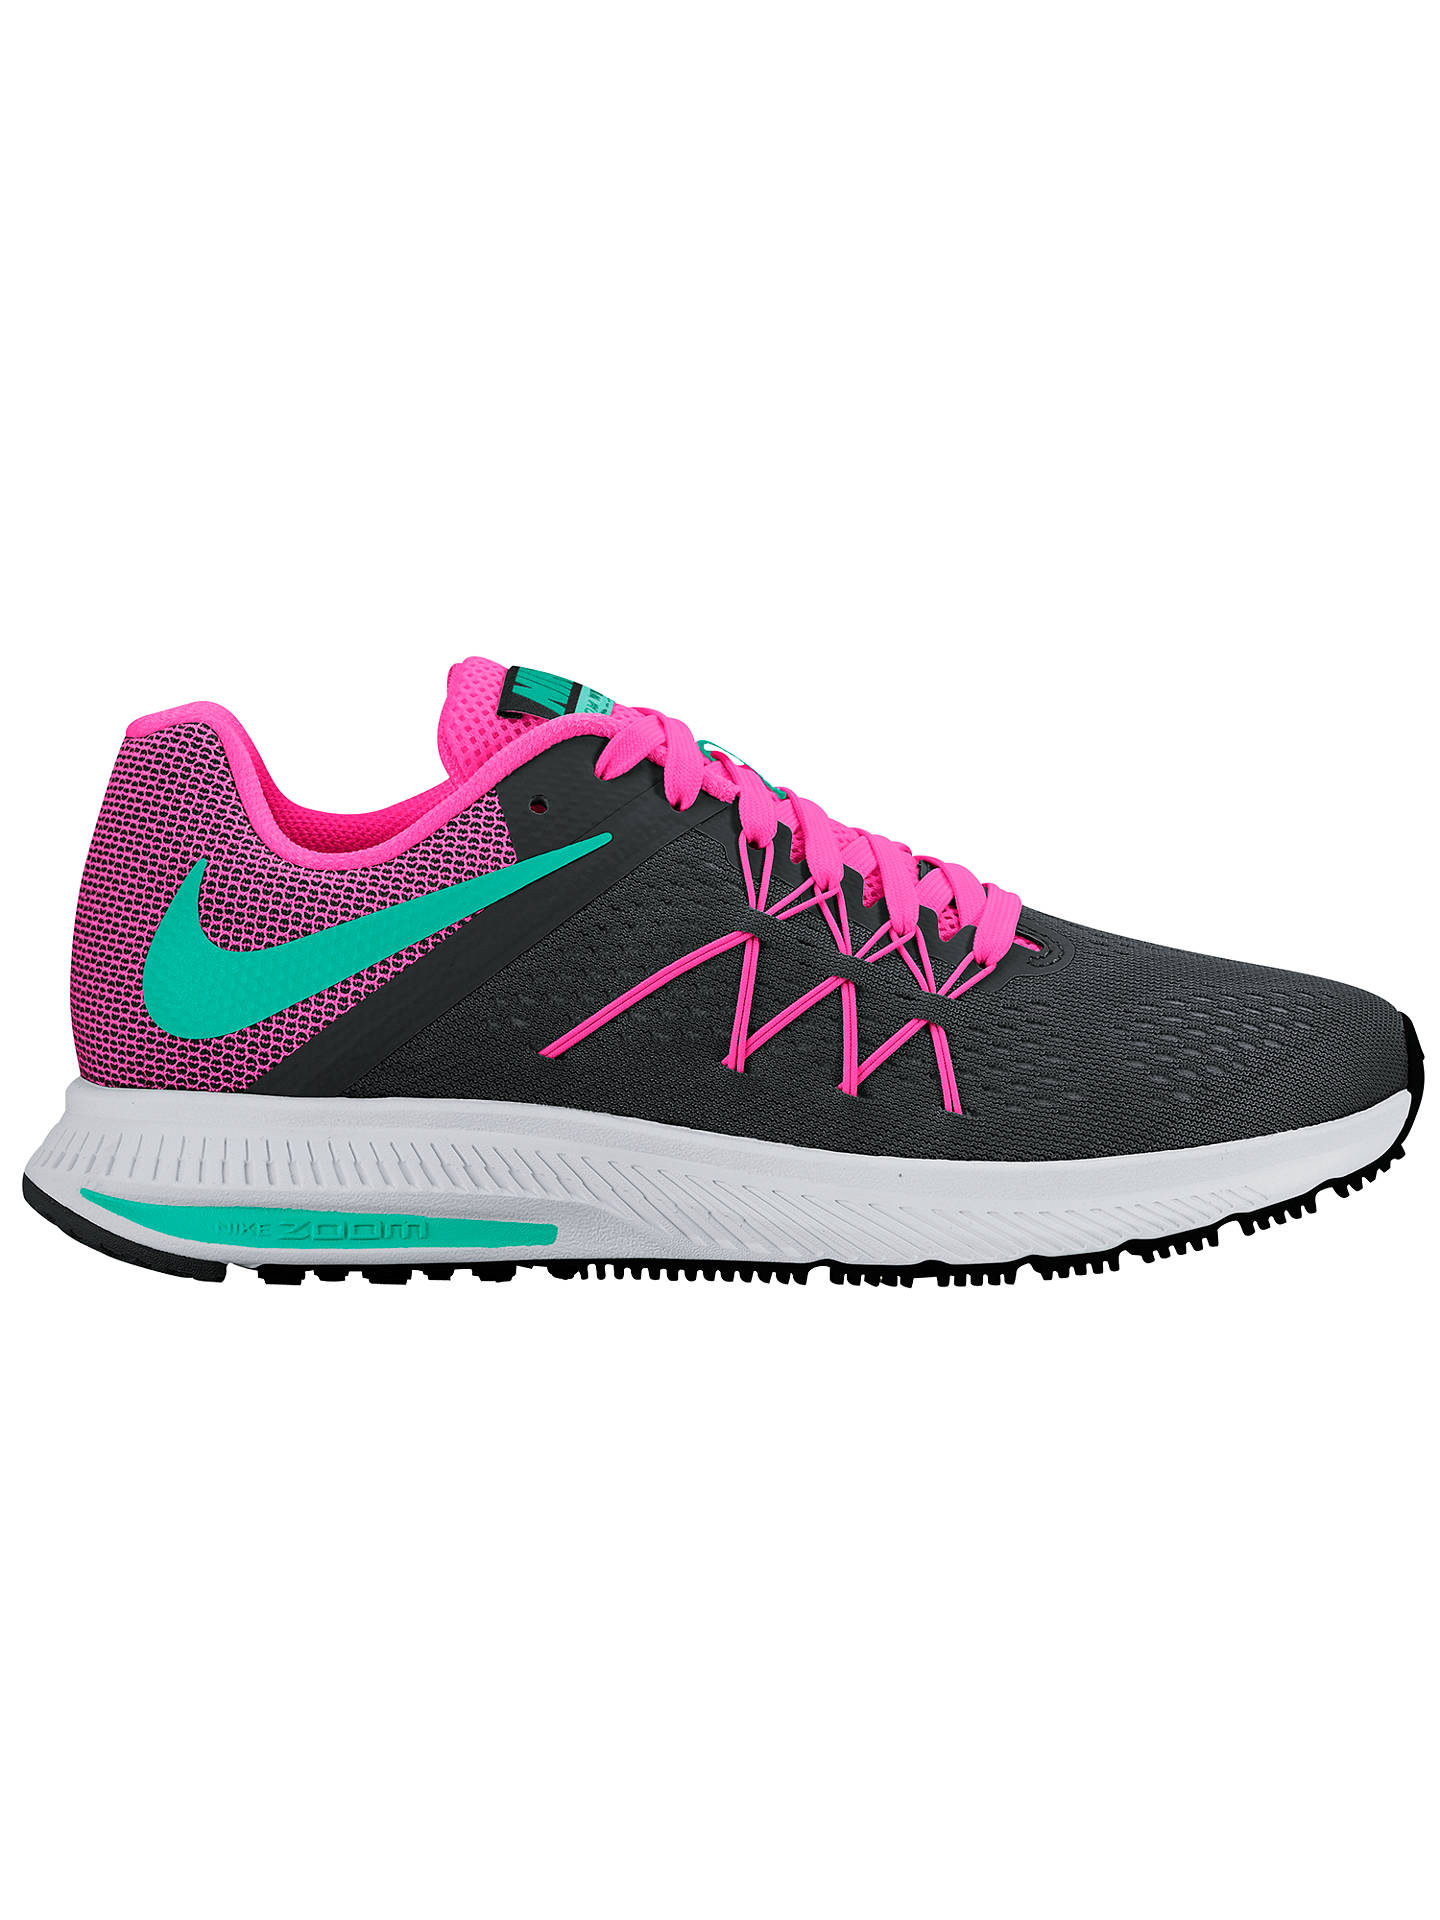 separation shoes e458d 421d4 Buy Nike Air Zoom Winflo 3 Women s Running Shoes, Black Multi, 4 Online ...